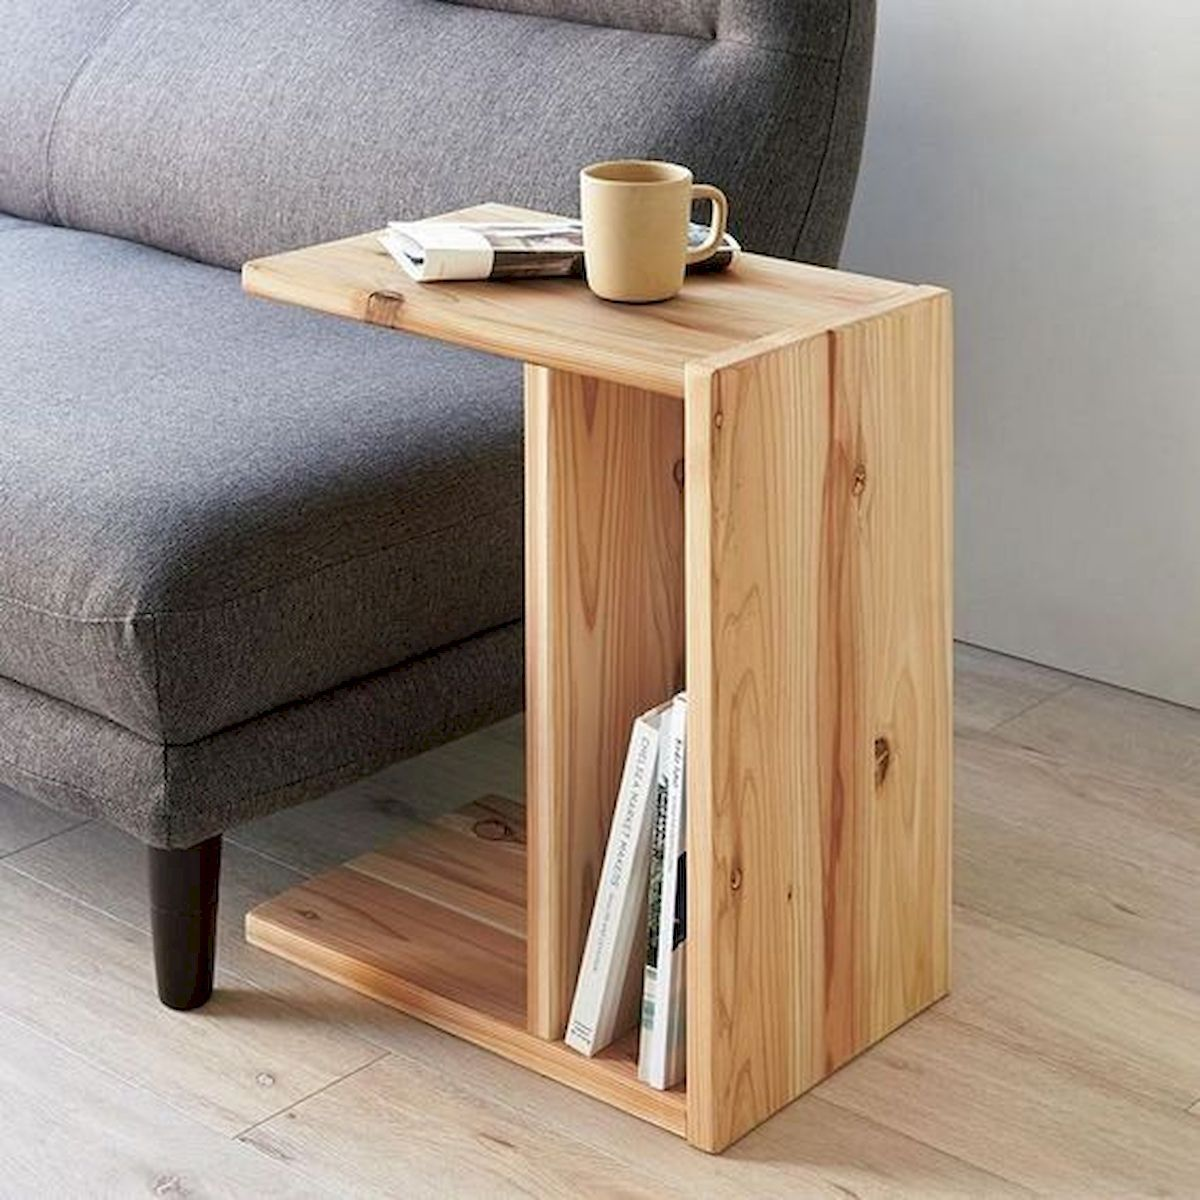 70 Creative Summer Diy Projects Mini Pallet Coffee Table Design Ideas And Remodel Worldecor Co Wood Furniture Diy End Table Plans Furniture Design